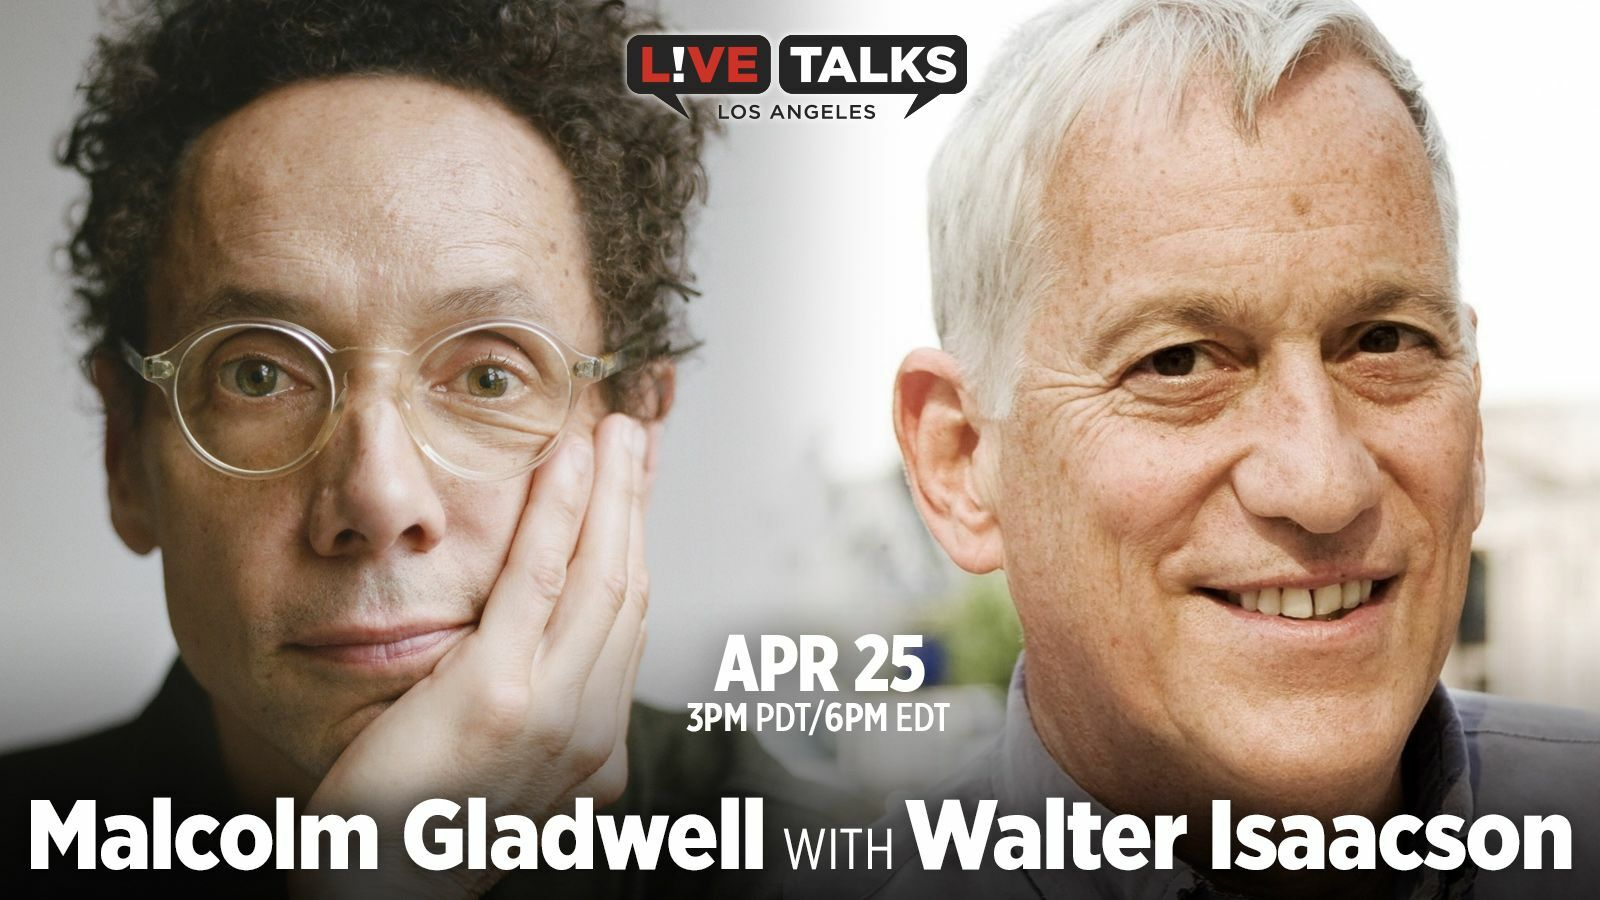 Malcolm Gladwell with Walter Isaacson - Online